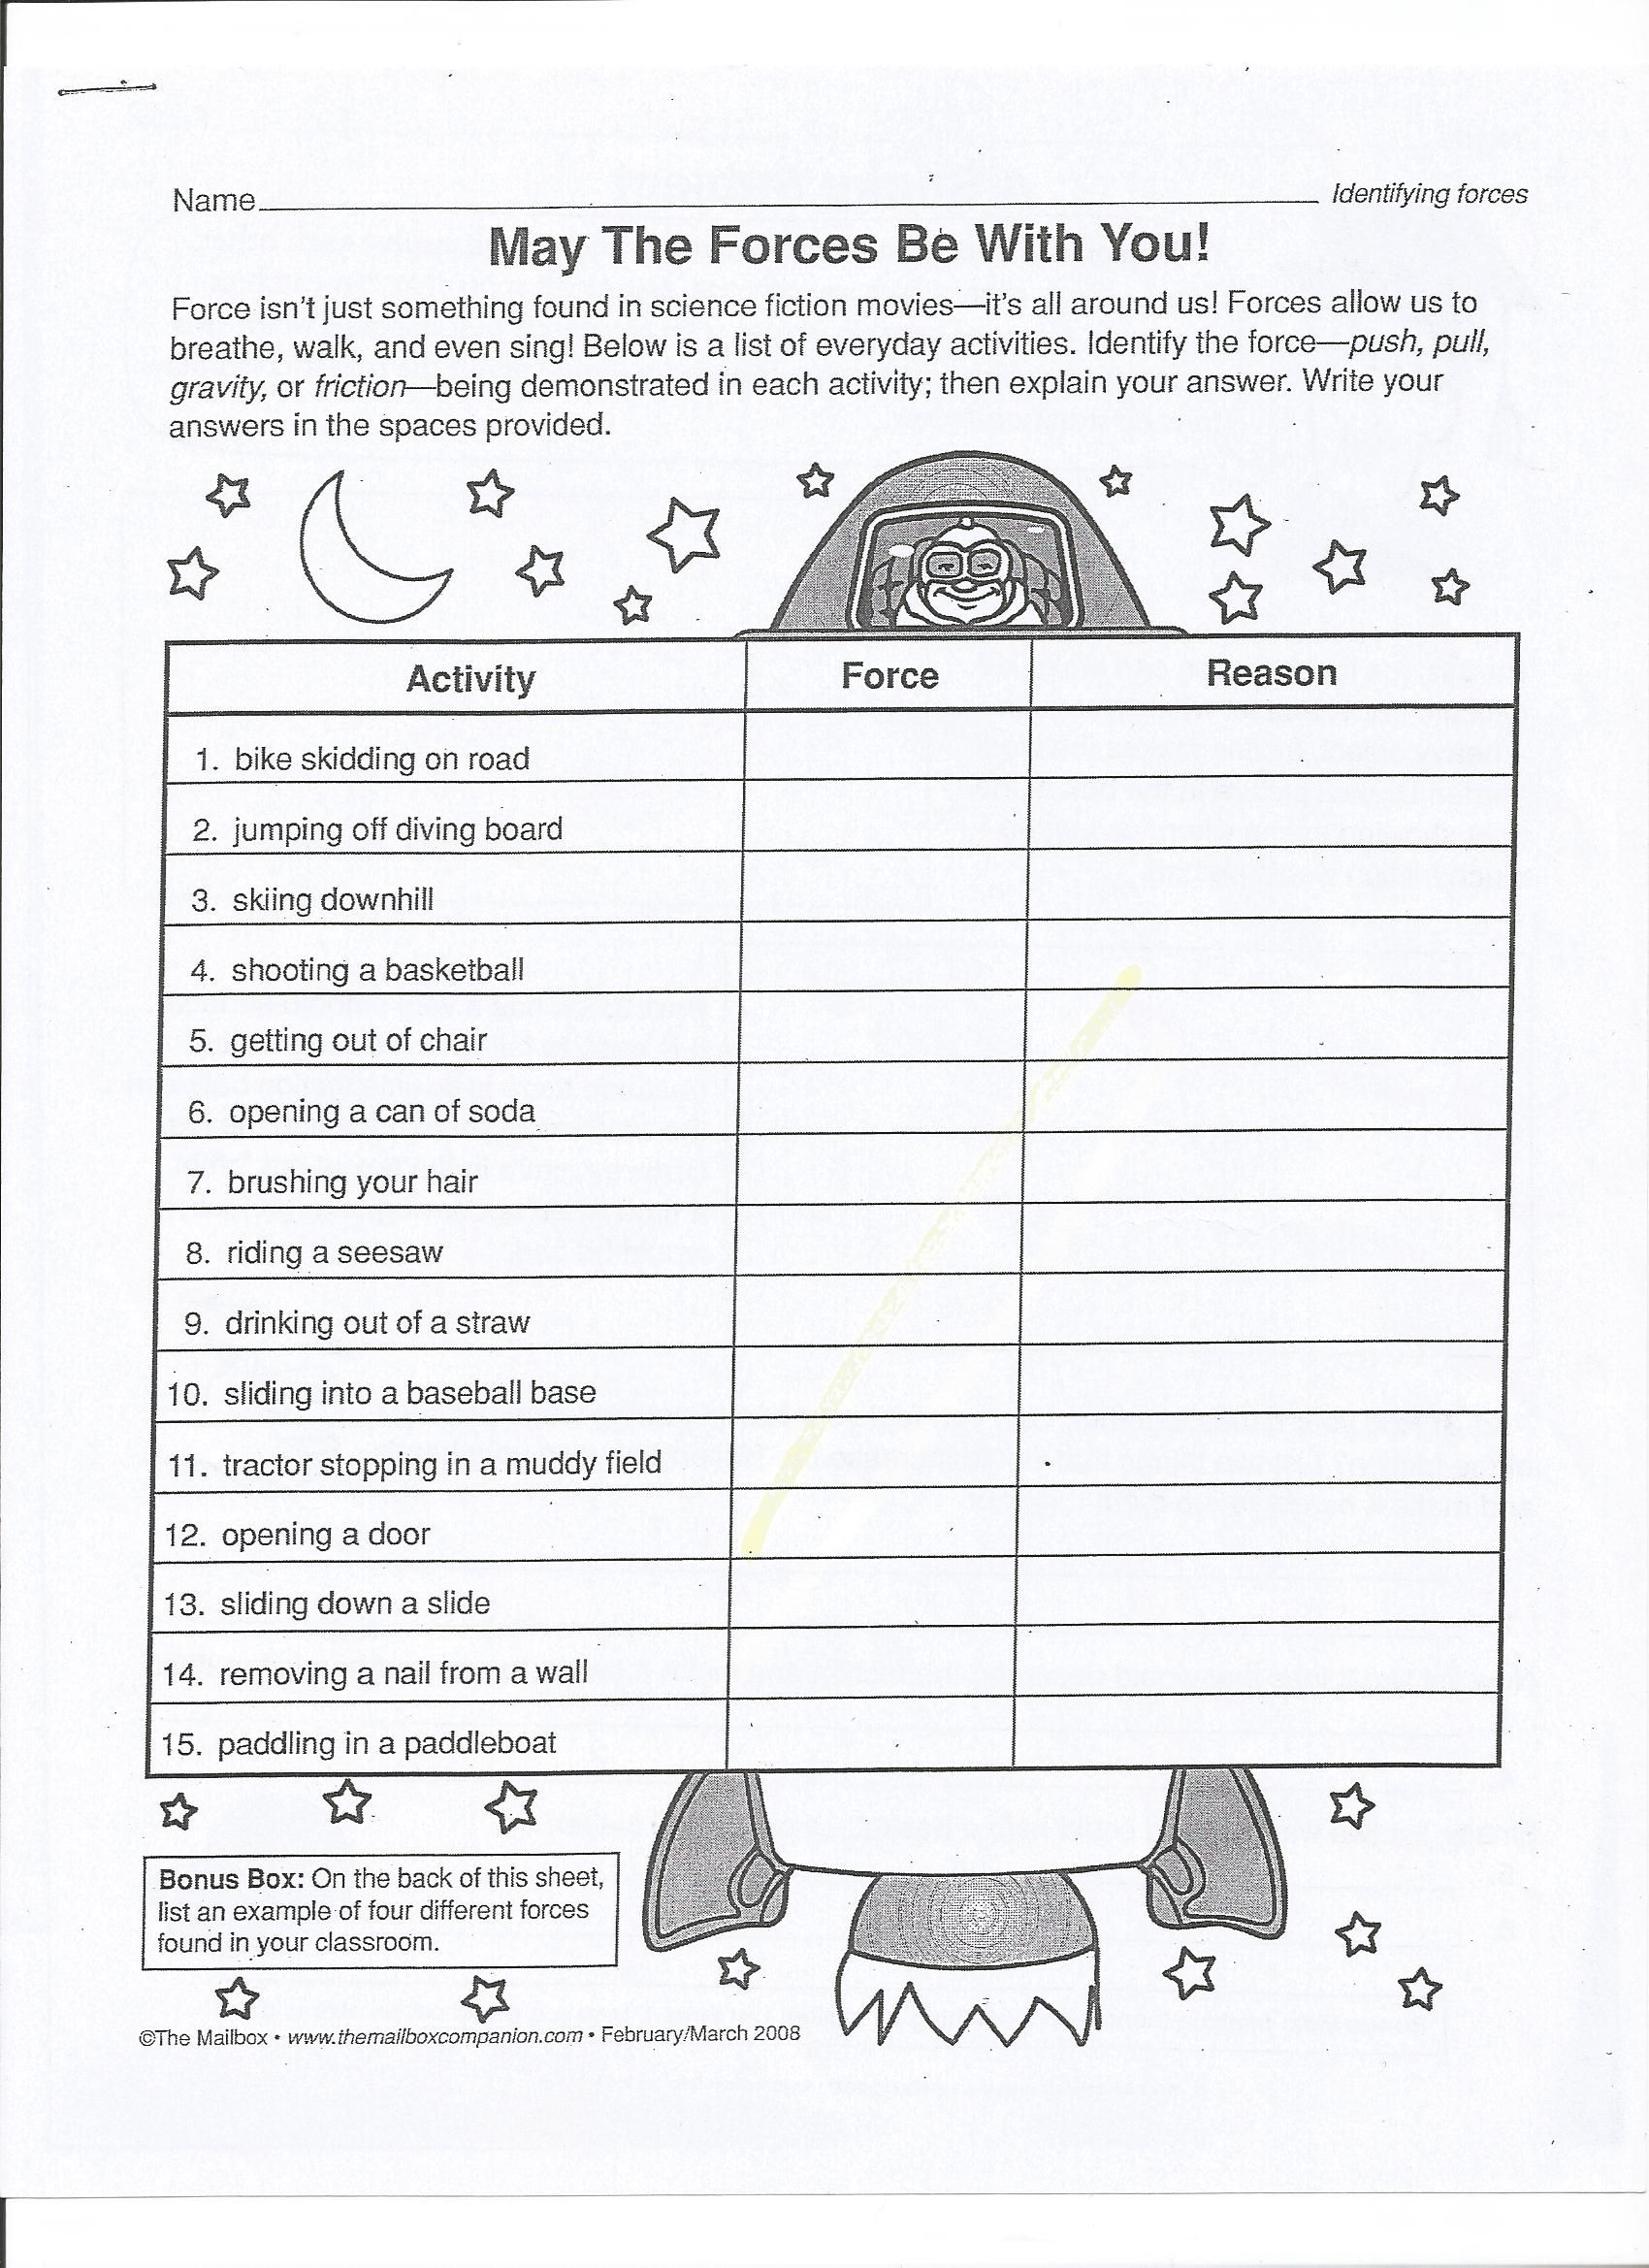 Balanced And Unbalanced Forces Worksheet 13 Jpg 1700 2338 With